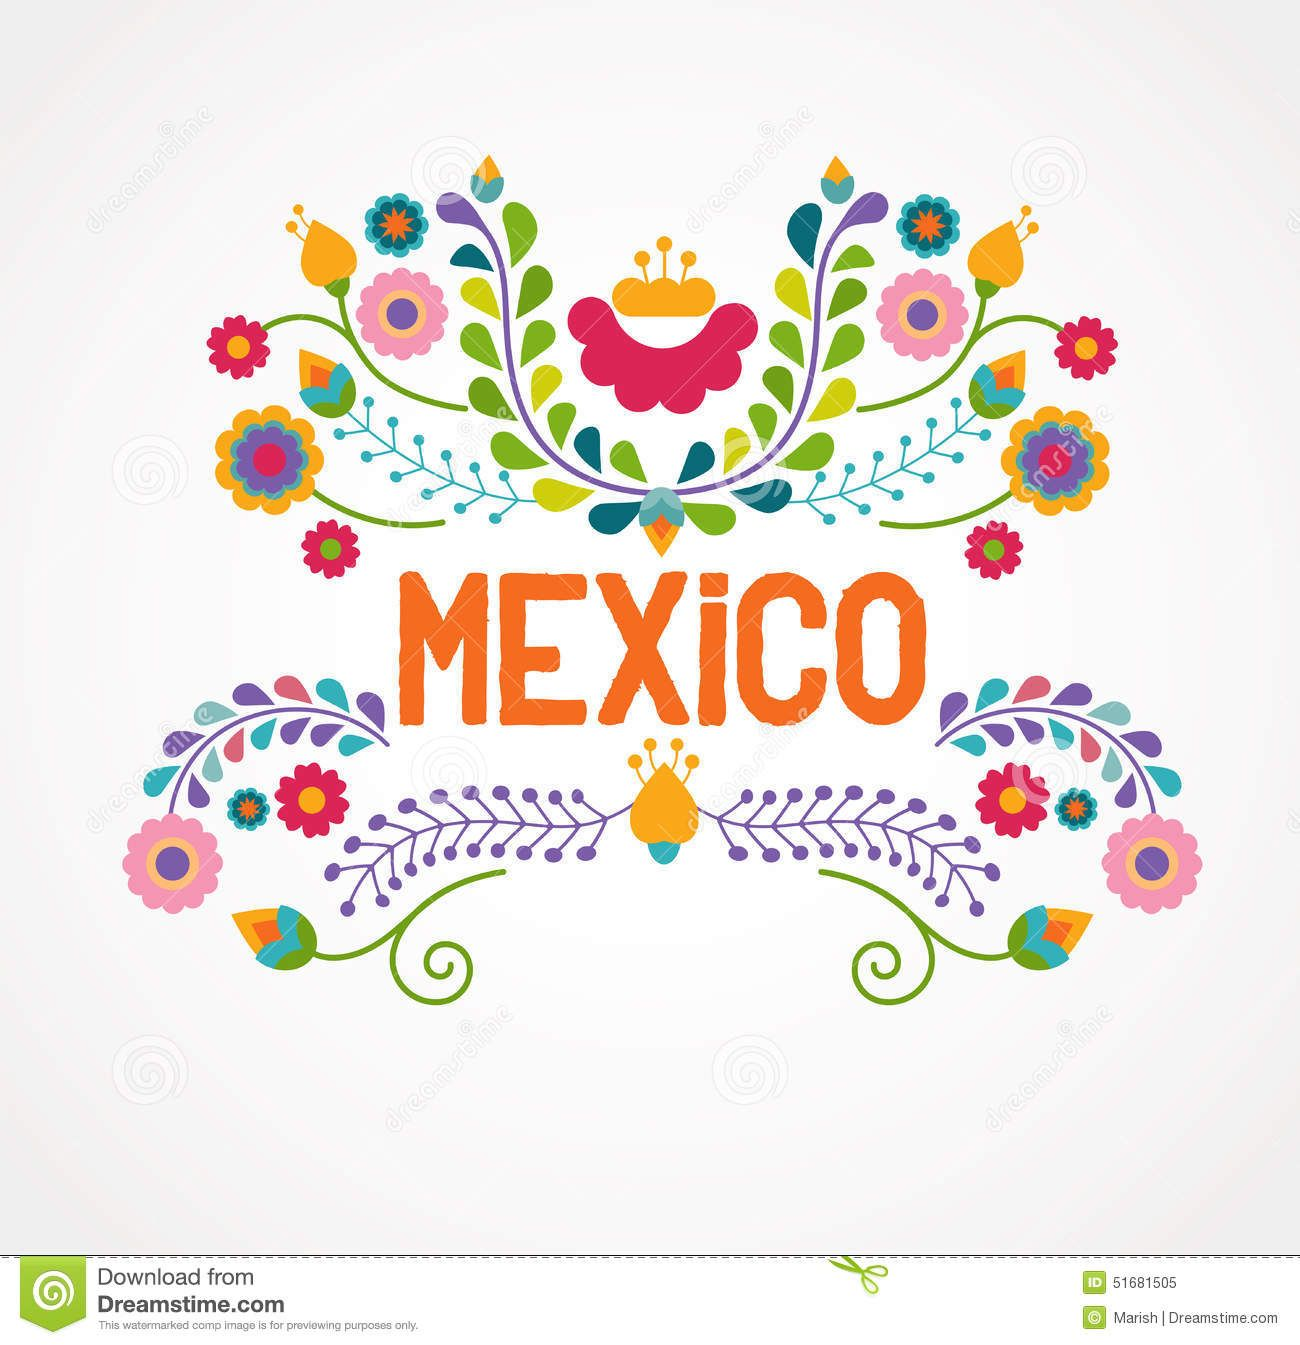 transparent download Mexico flowers pattern and. Mexican vector